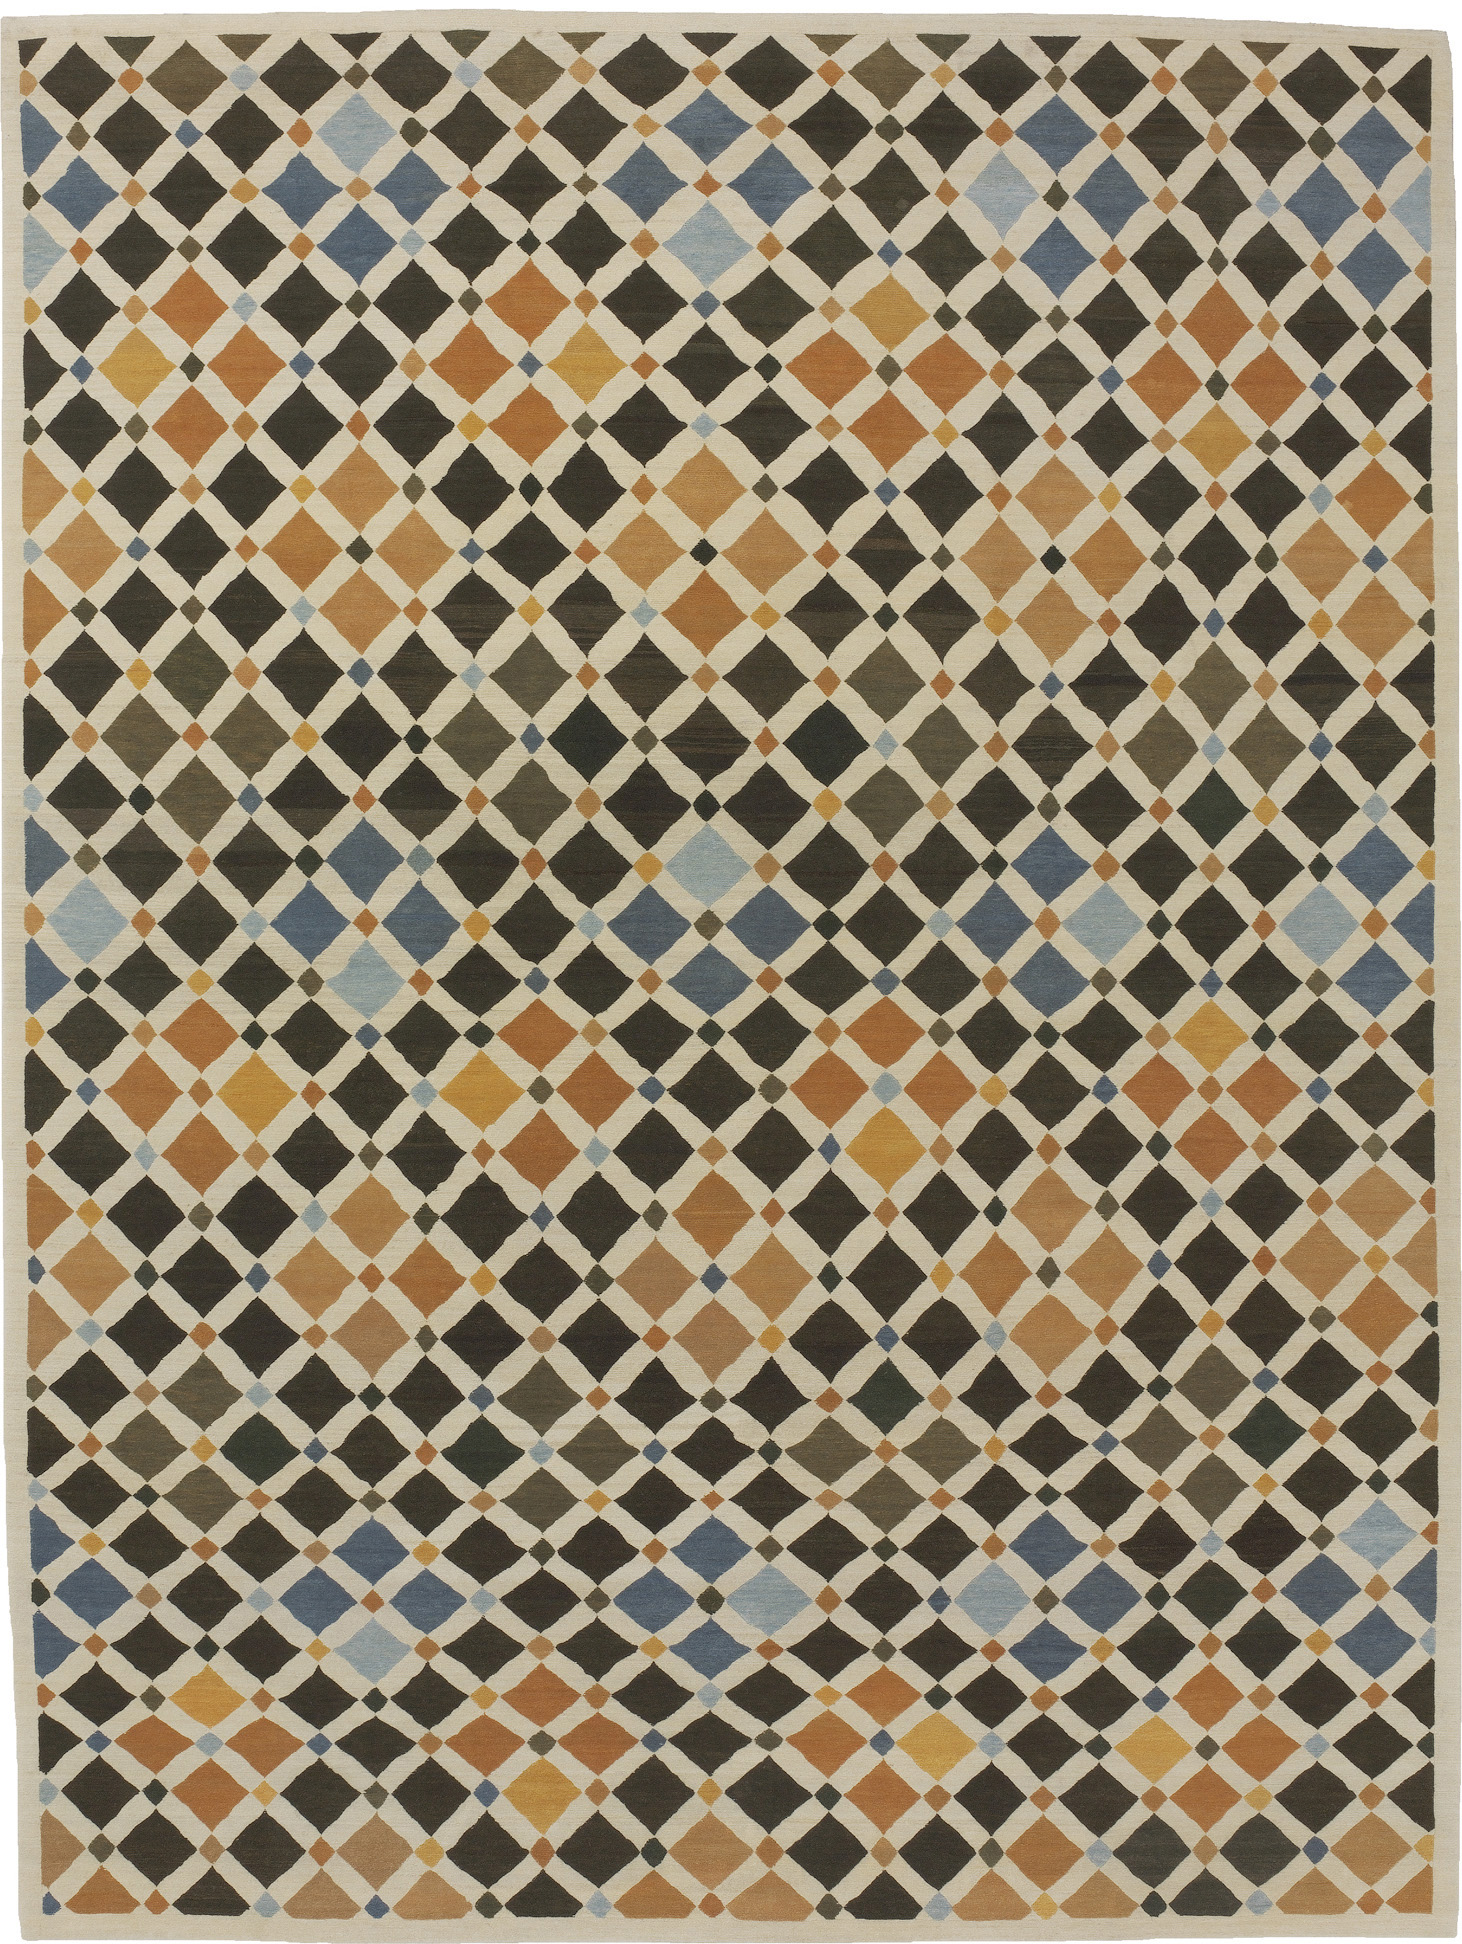 'Tile' by Odegard Carpets shown in their signature 'Youngtse' quality. Tibetan for 'best of the best' Odegard's Youngtse quality was first introduced in 1987 ushering in a revolution in modern handmade carpet design and making.   Image courtesy of Odegard Carpets.